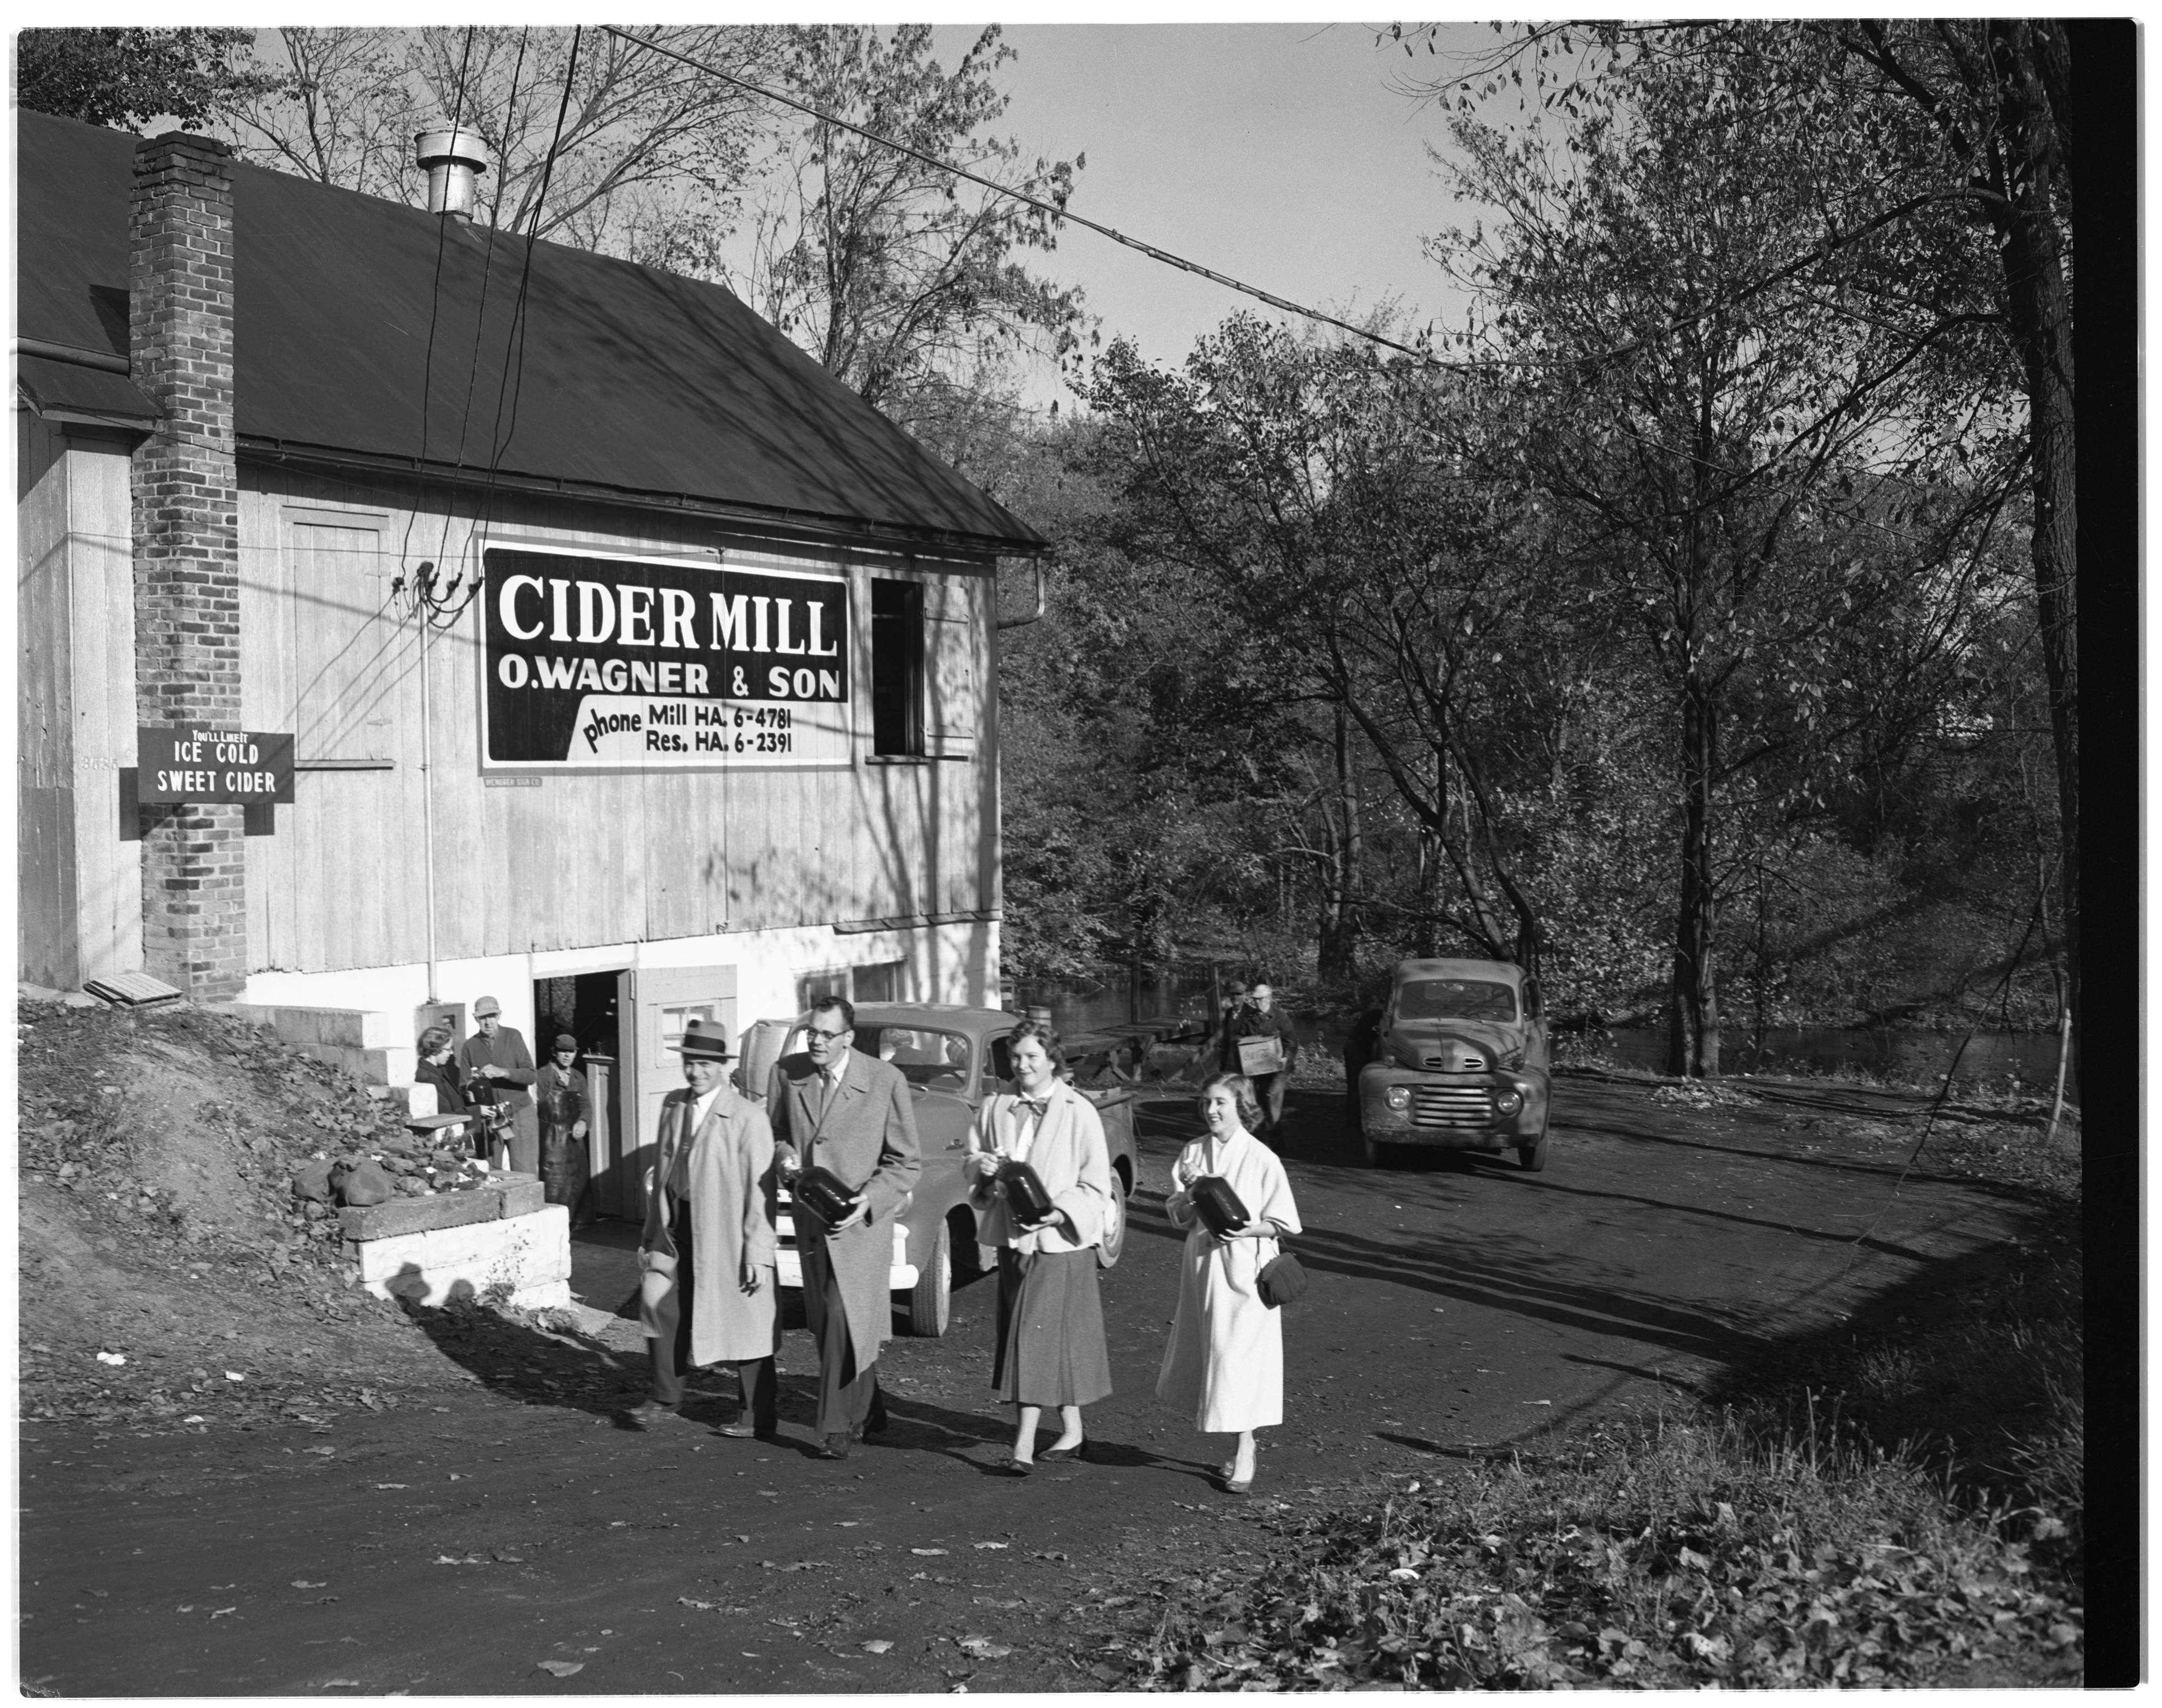 Dexter Cider Mill: O. Wagner and Son image